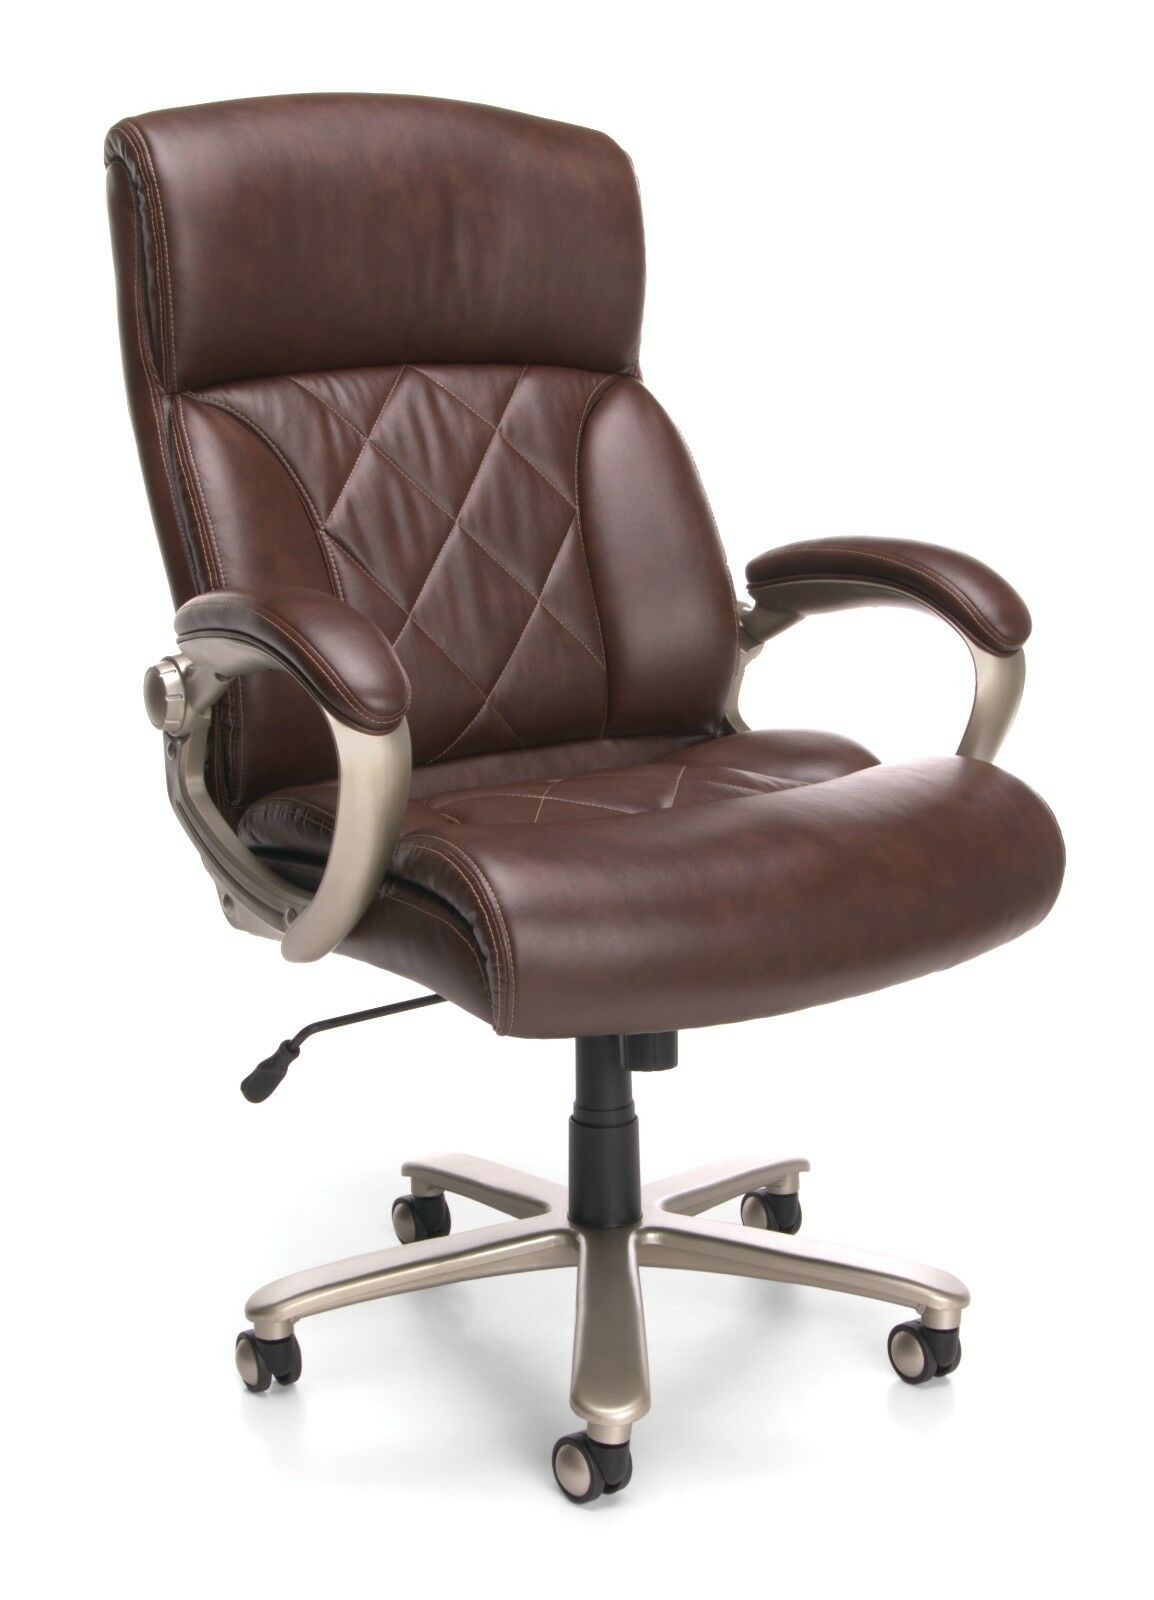 Big & Tall 400 lbs. Capacity Brown Leather Executive Office